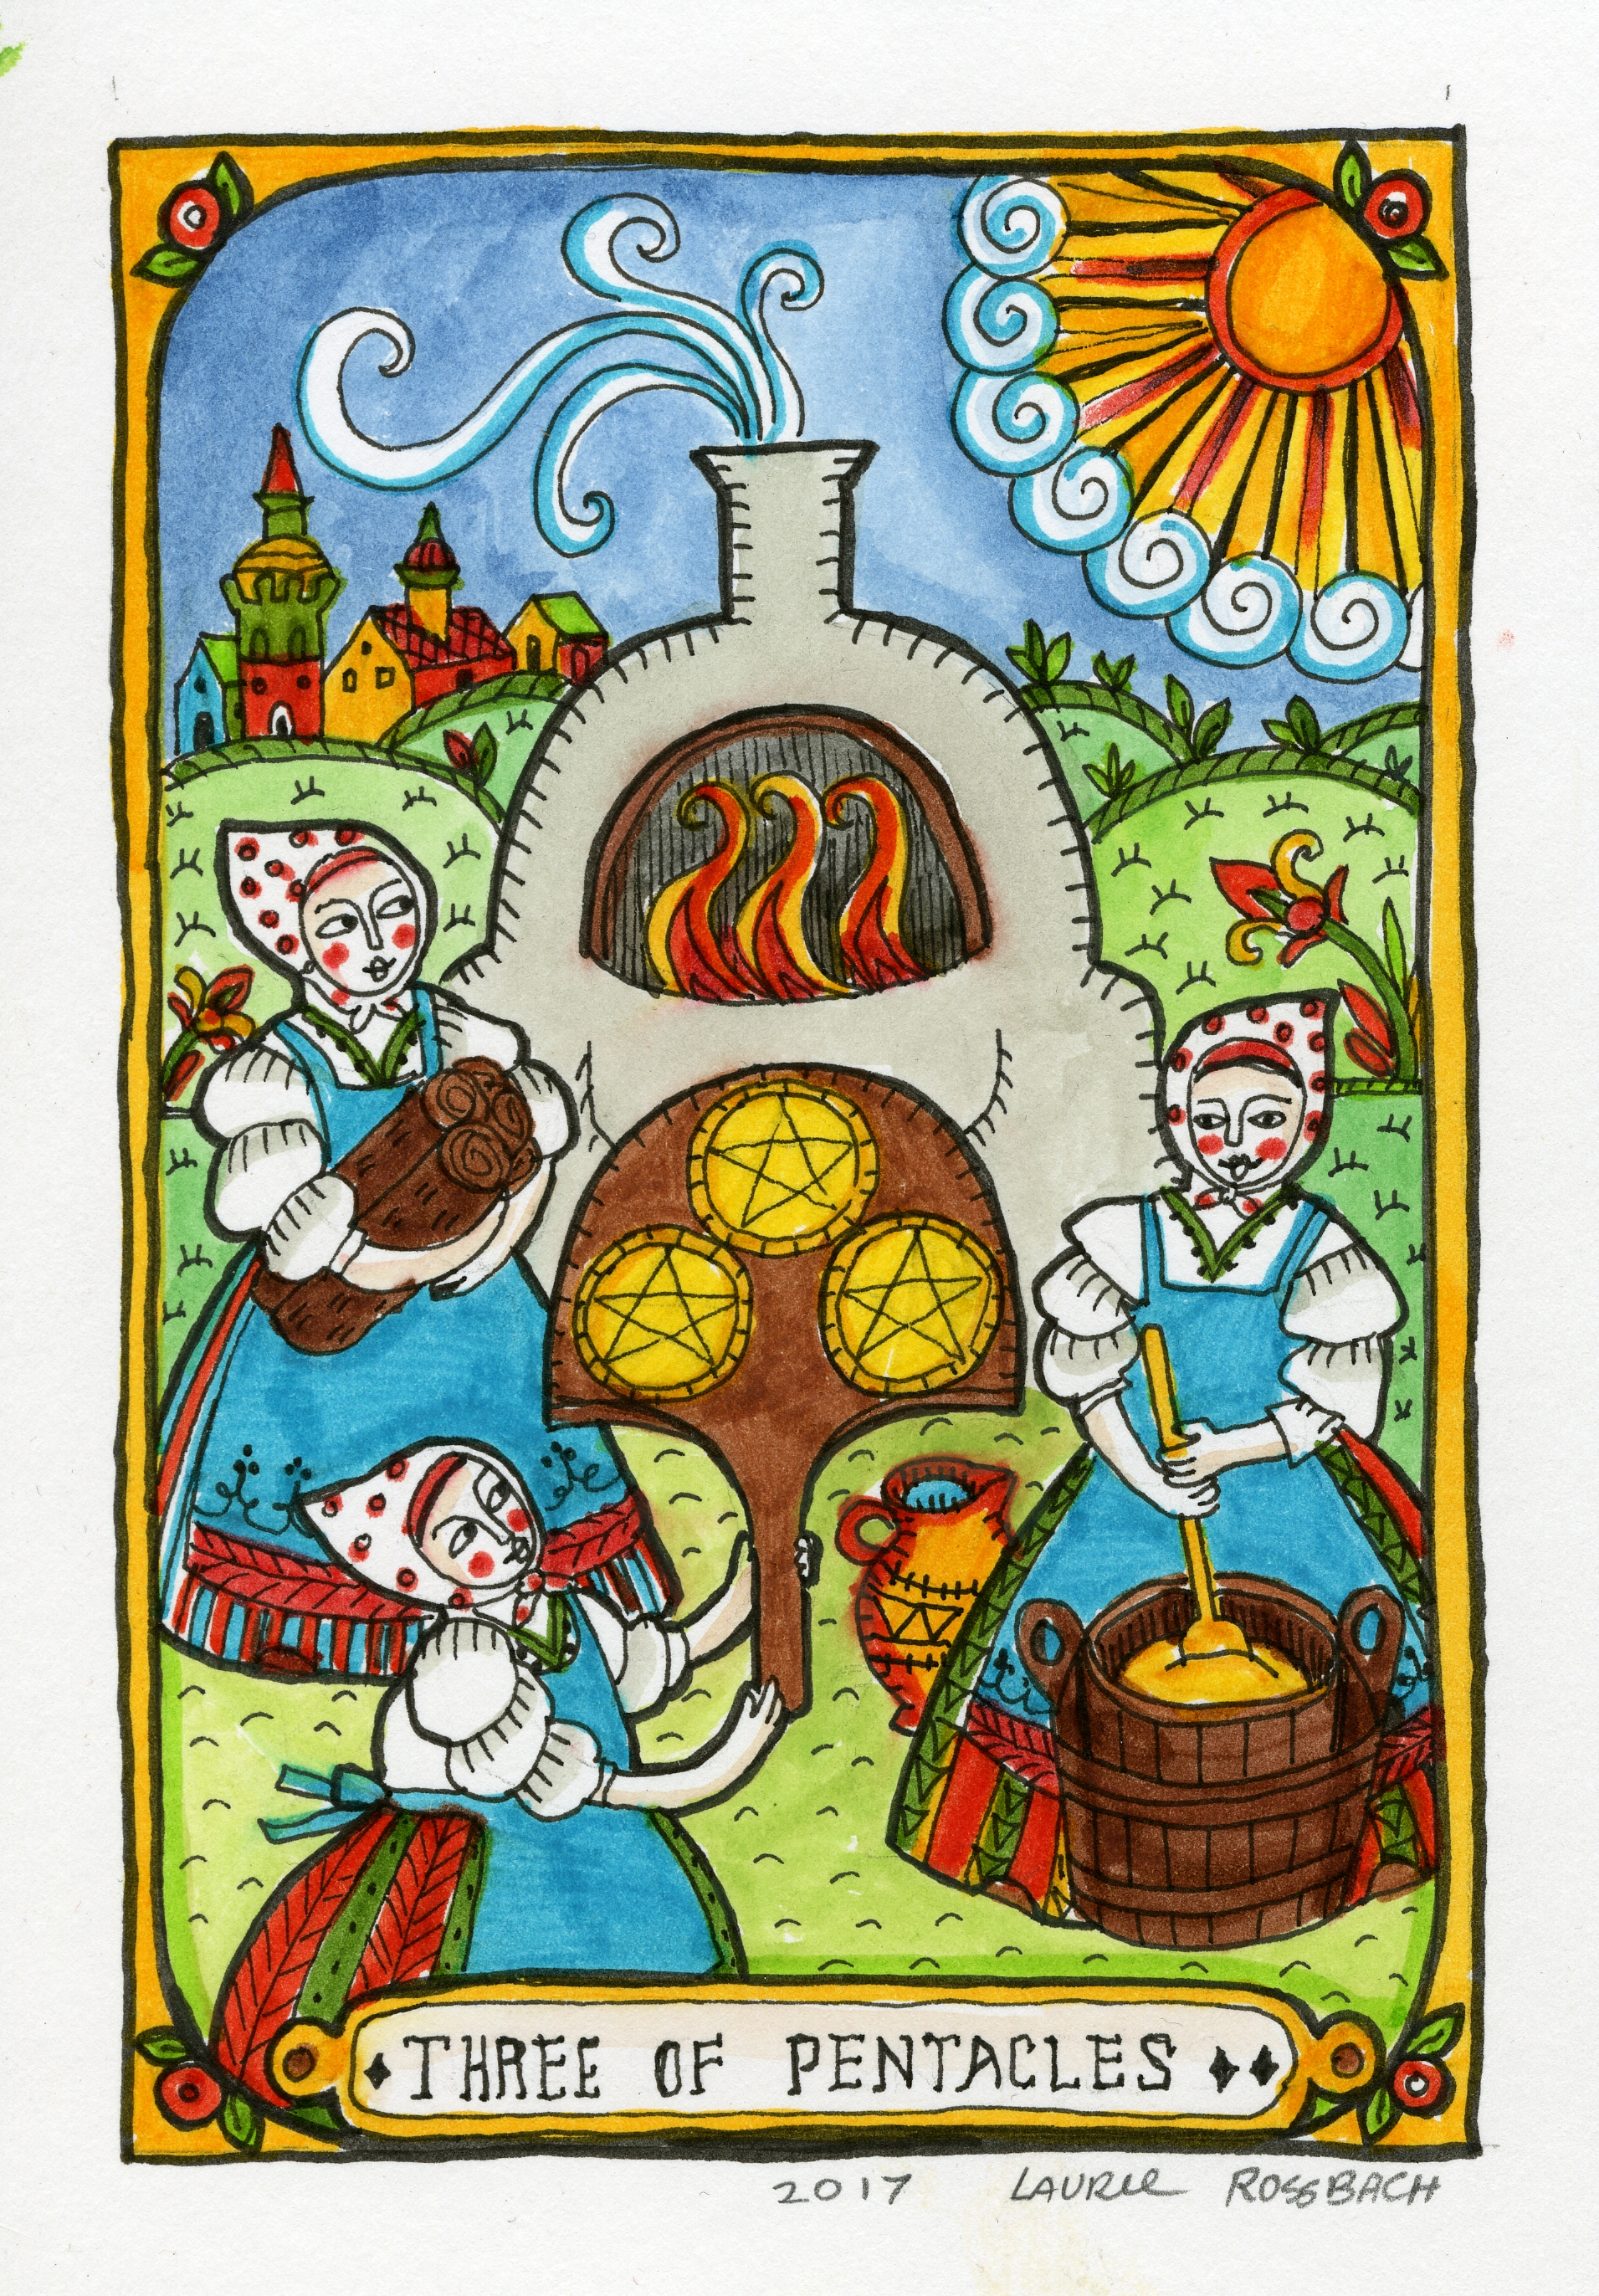 Laurie Rossbach - Three of Pentacles